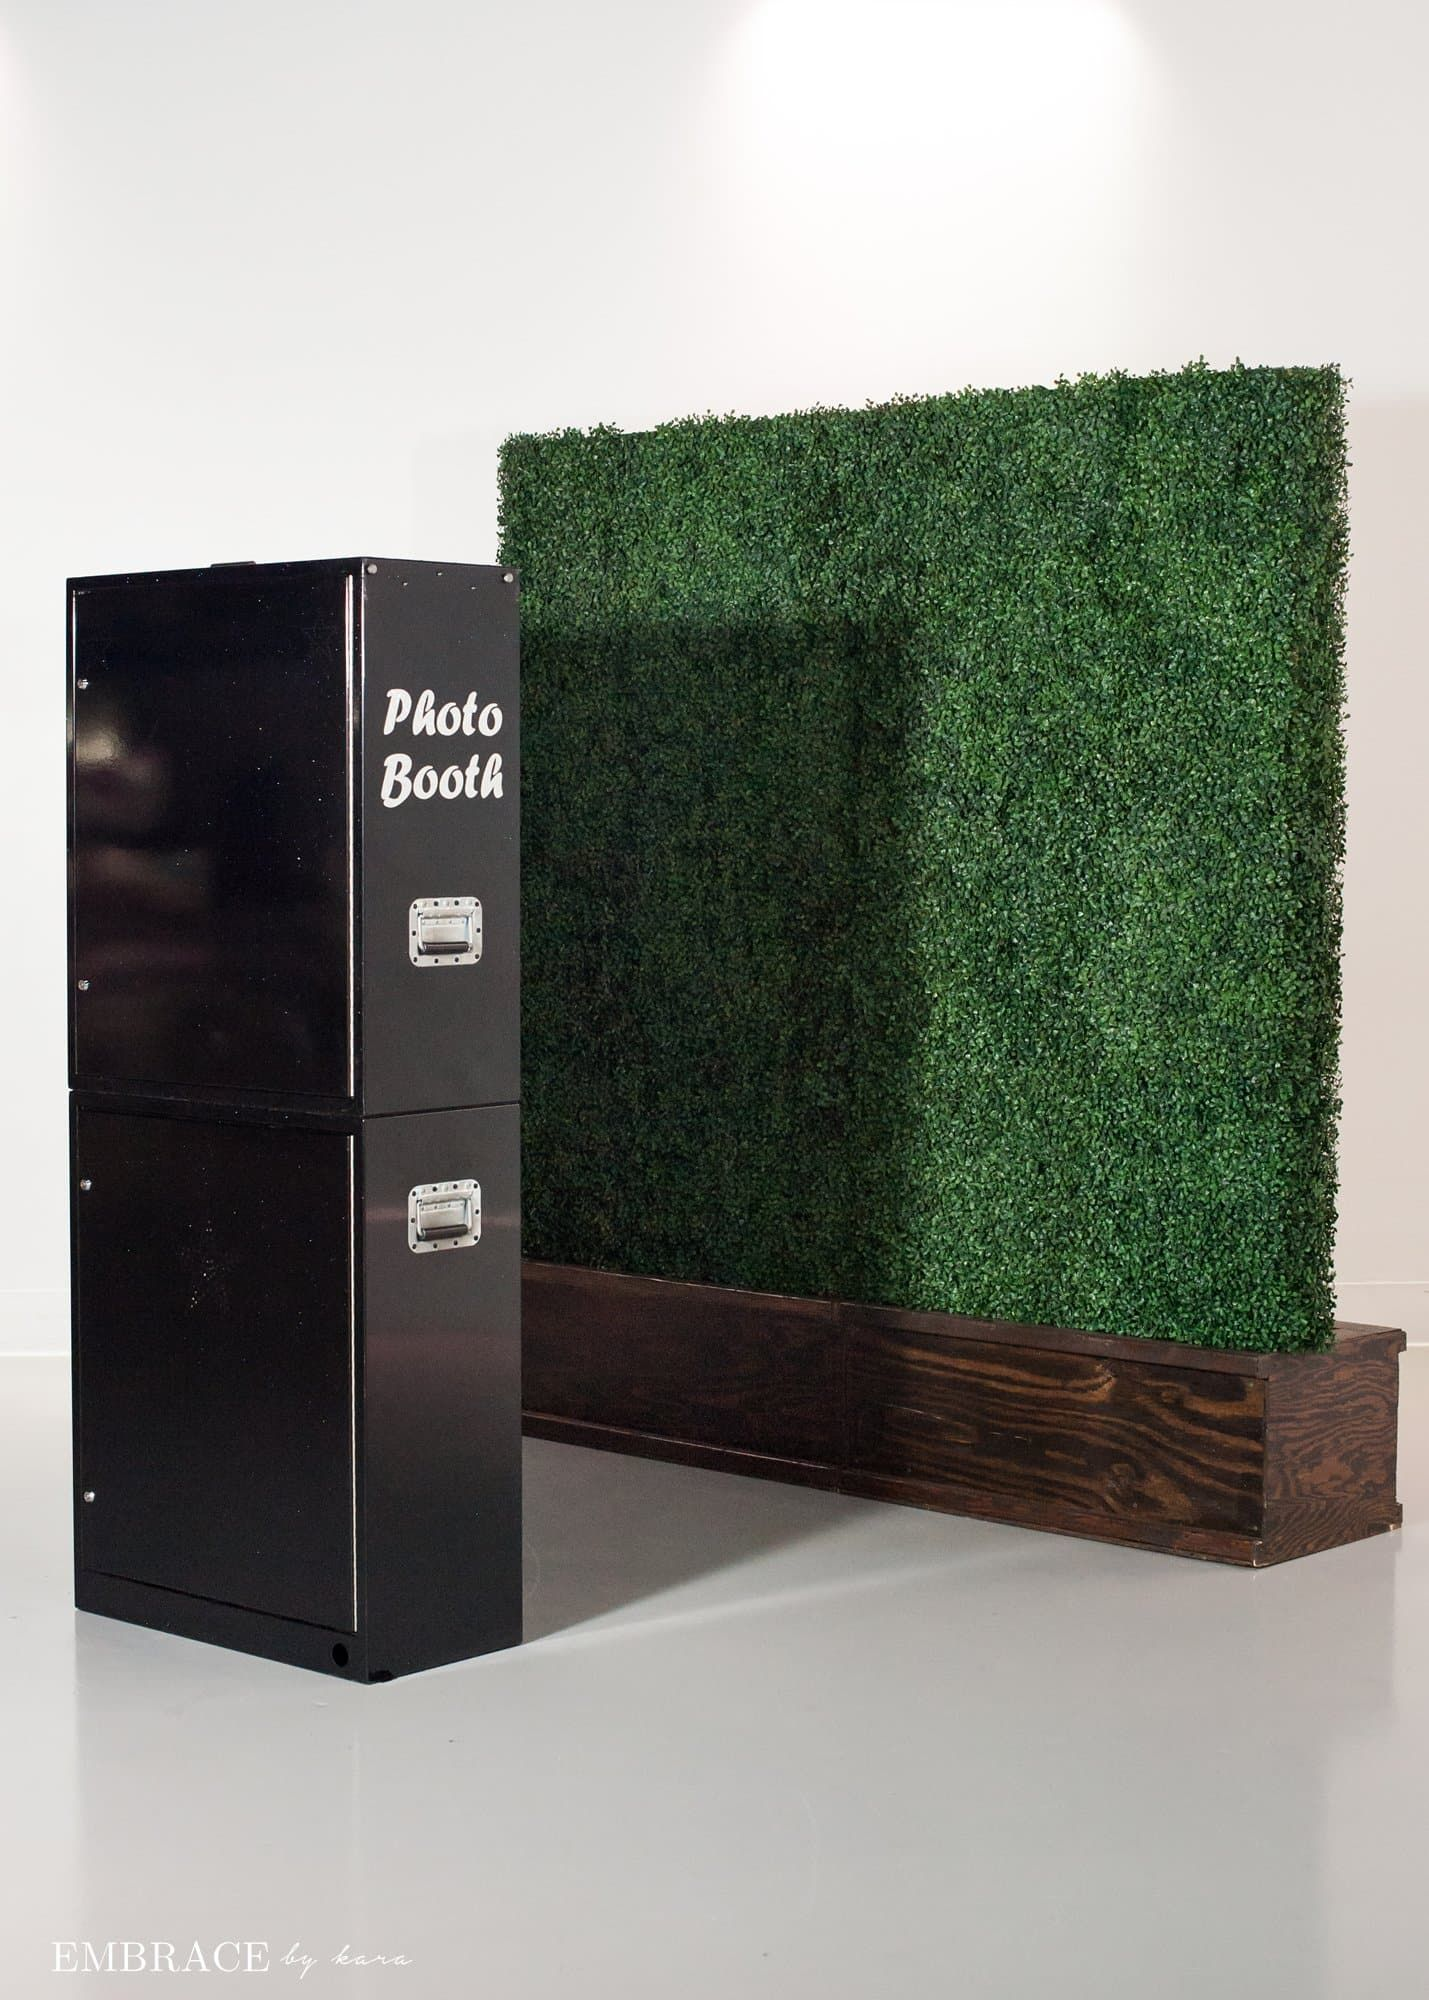 Vine Wall Booth Black Open Air Photo booth rental